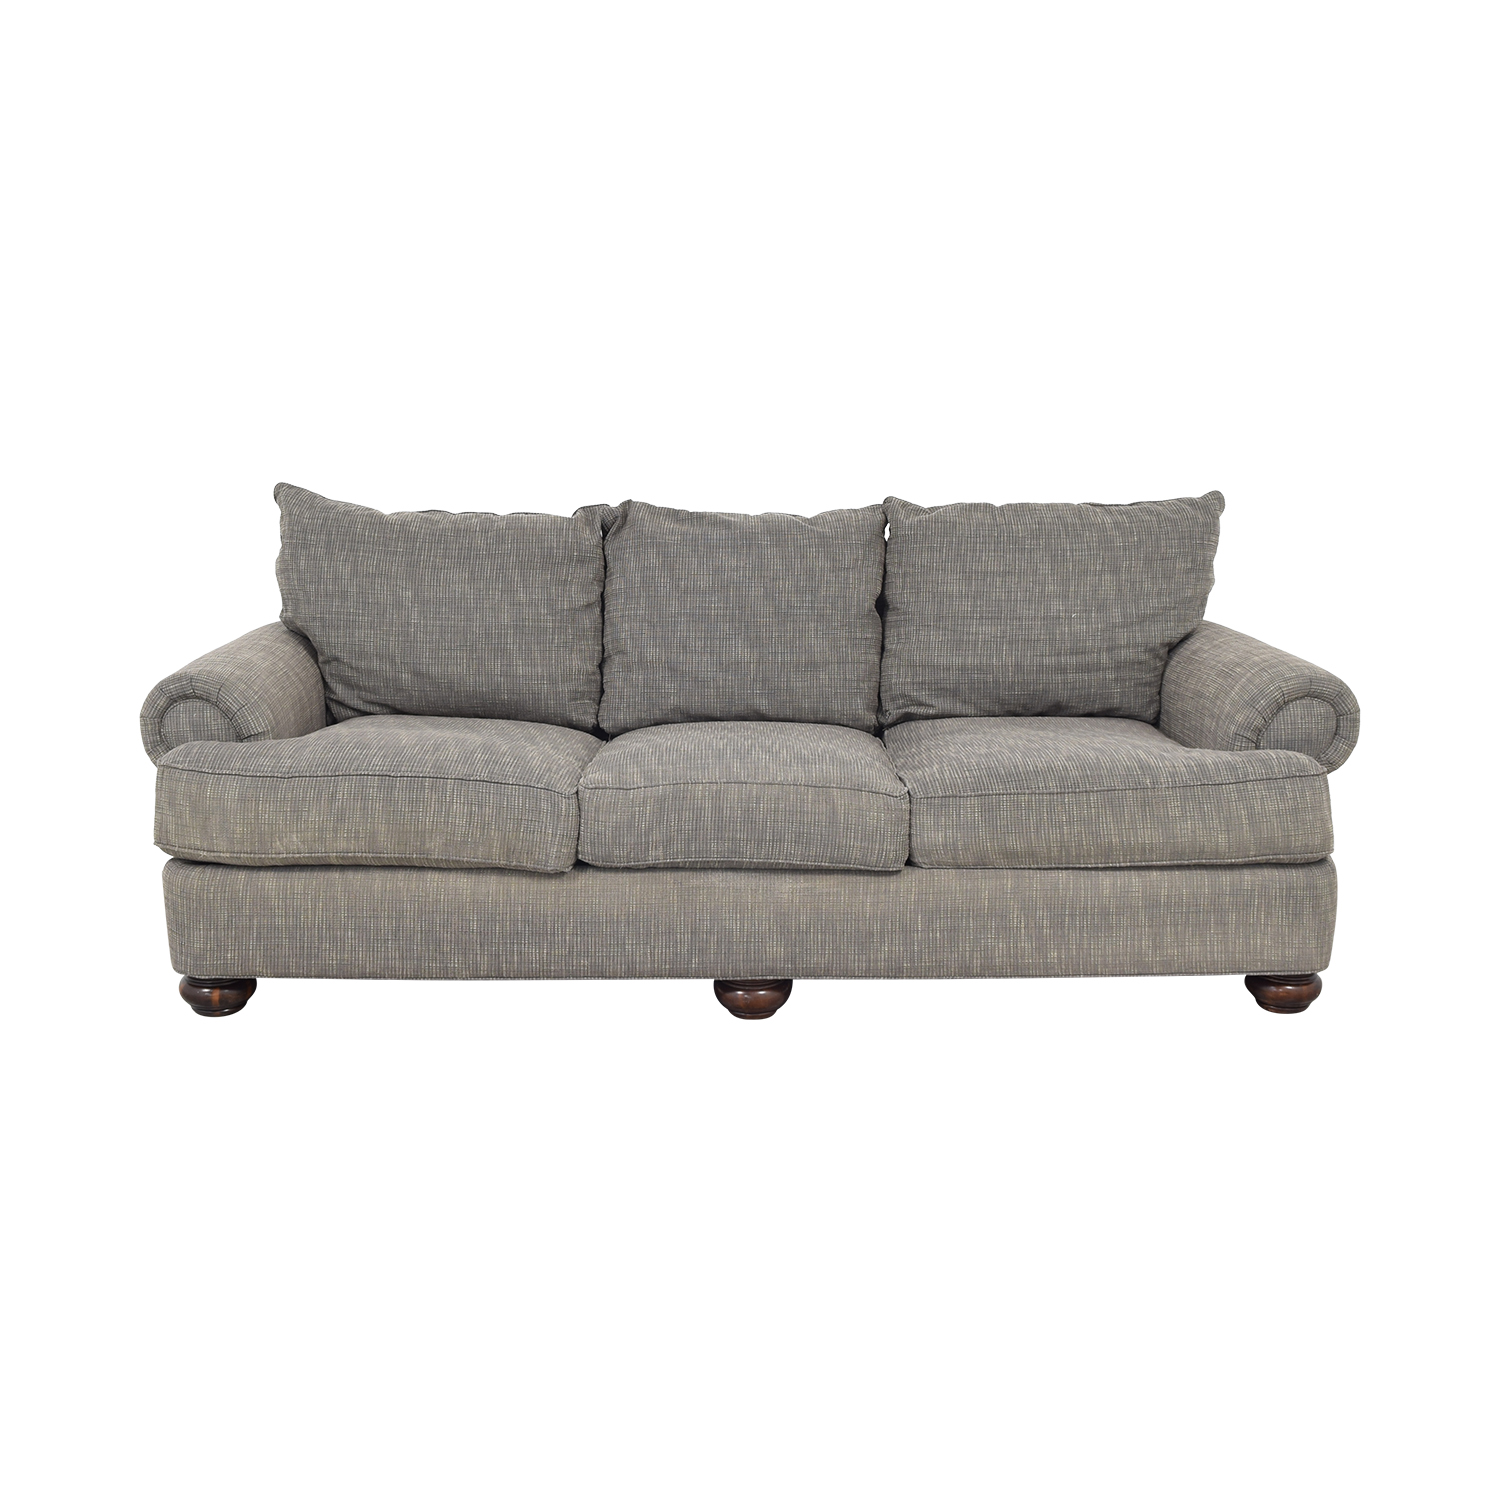 Thomasville Thomasville Oversize Three Cushion Sofa second hand